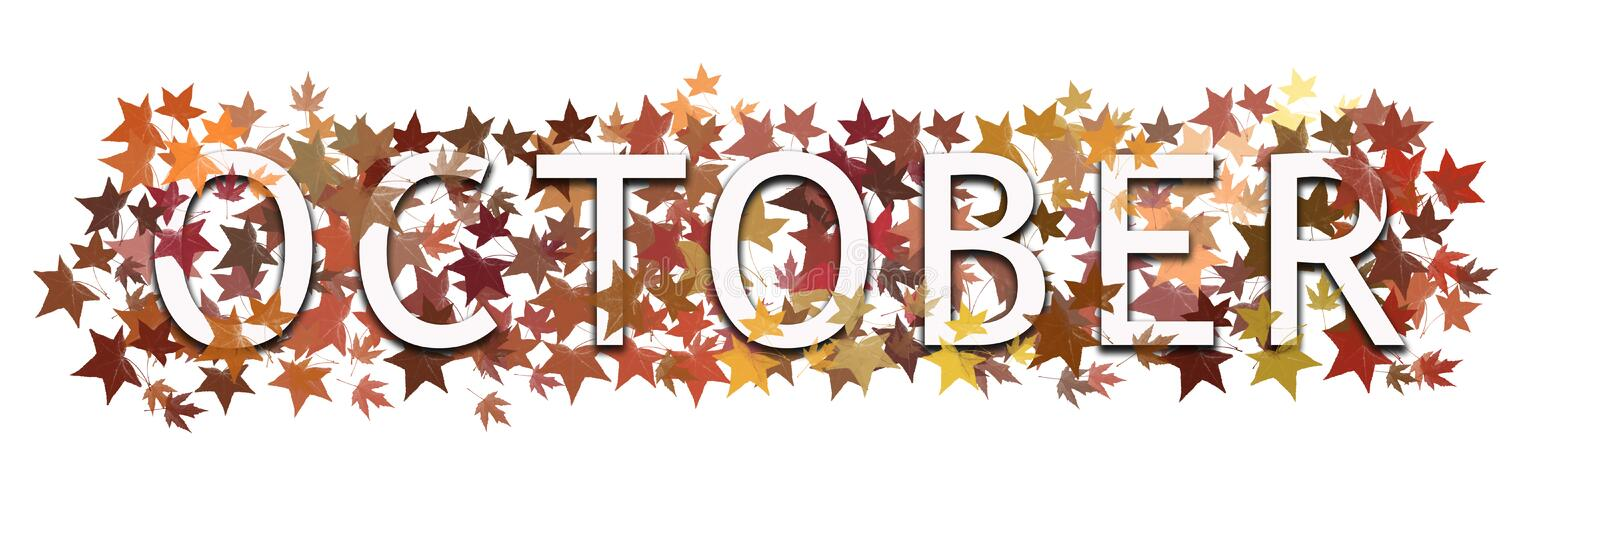 October month text, word wrapped in and layered with autumnal leaves. Isolated on white background. October month text, word wrapped in and layered with royalty free illustration